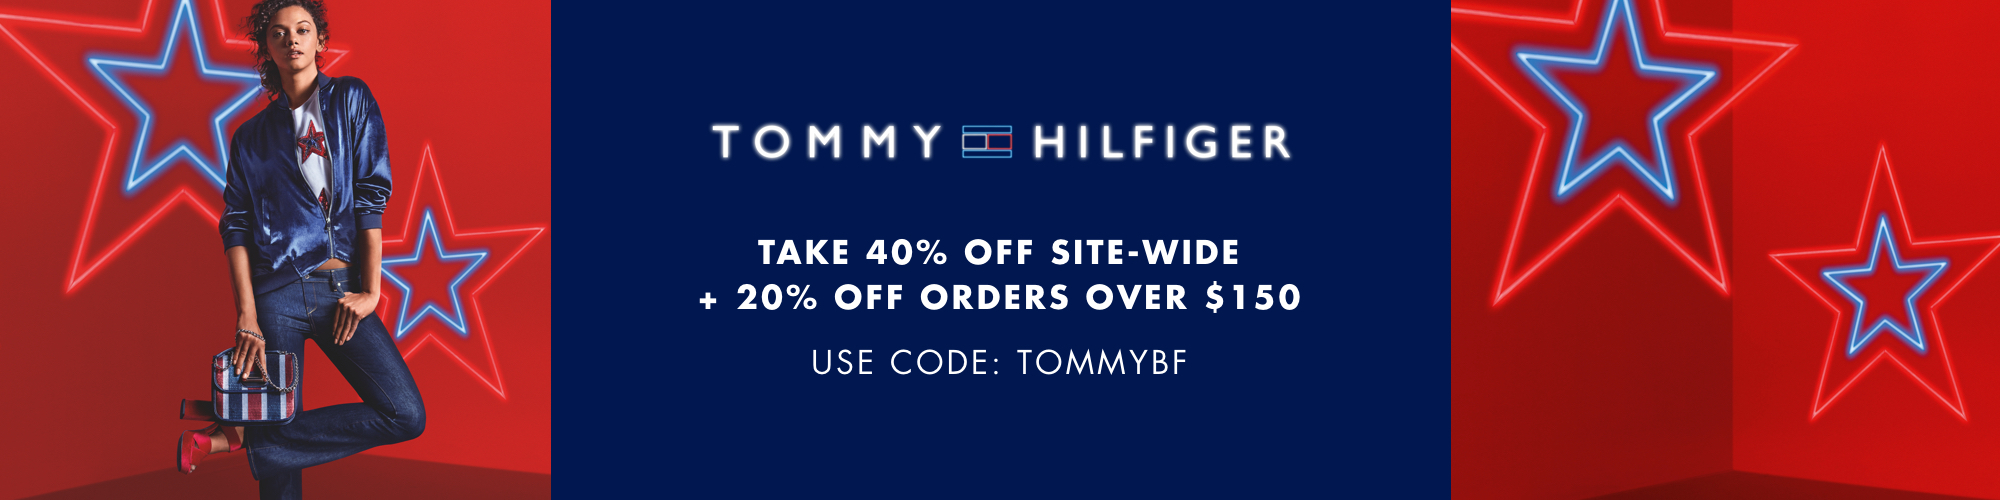 Tommy Hilfiger Black Friday 2020 Ad